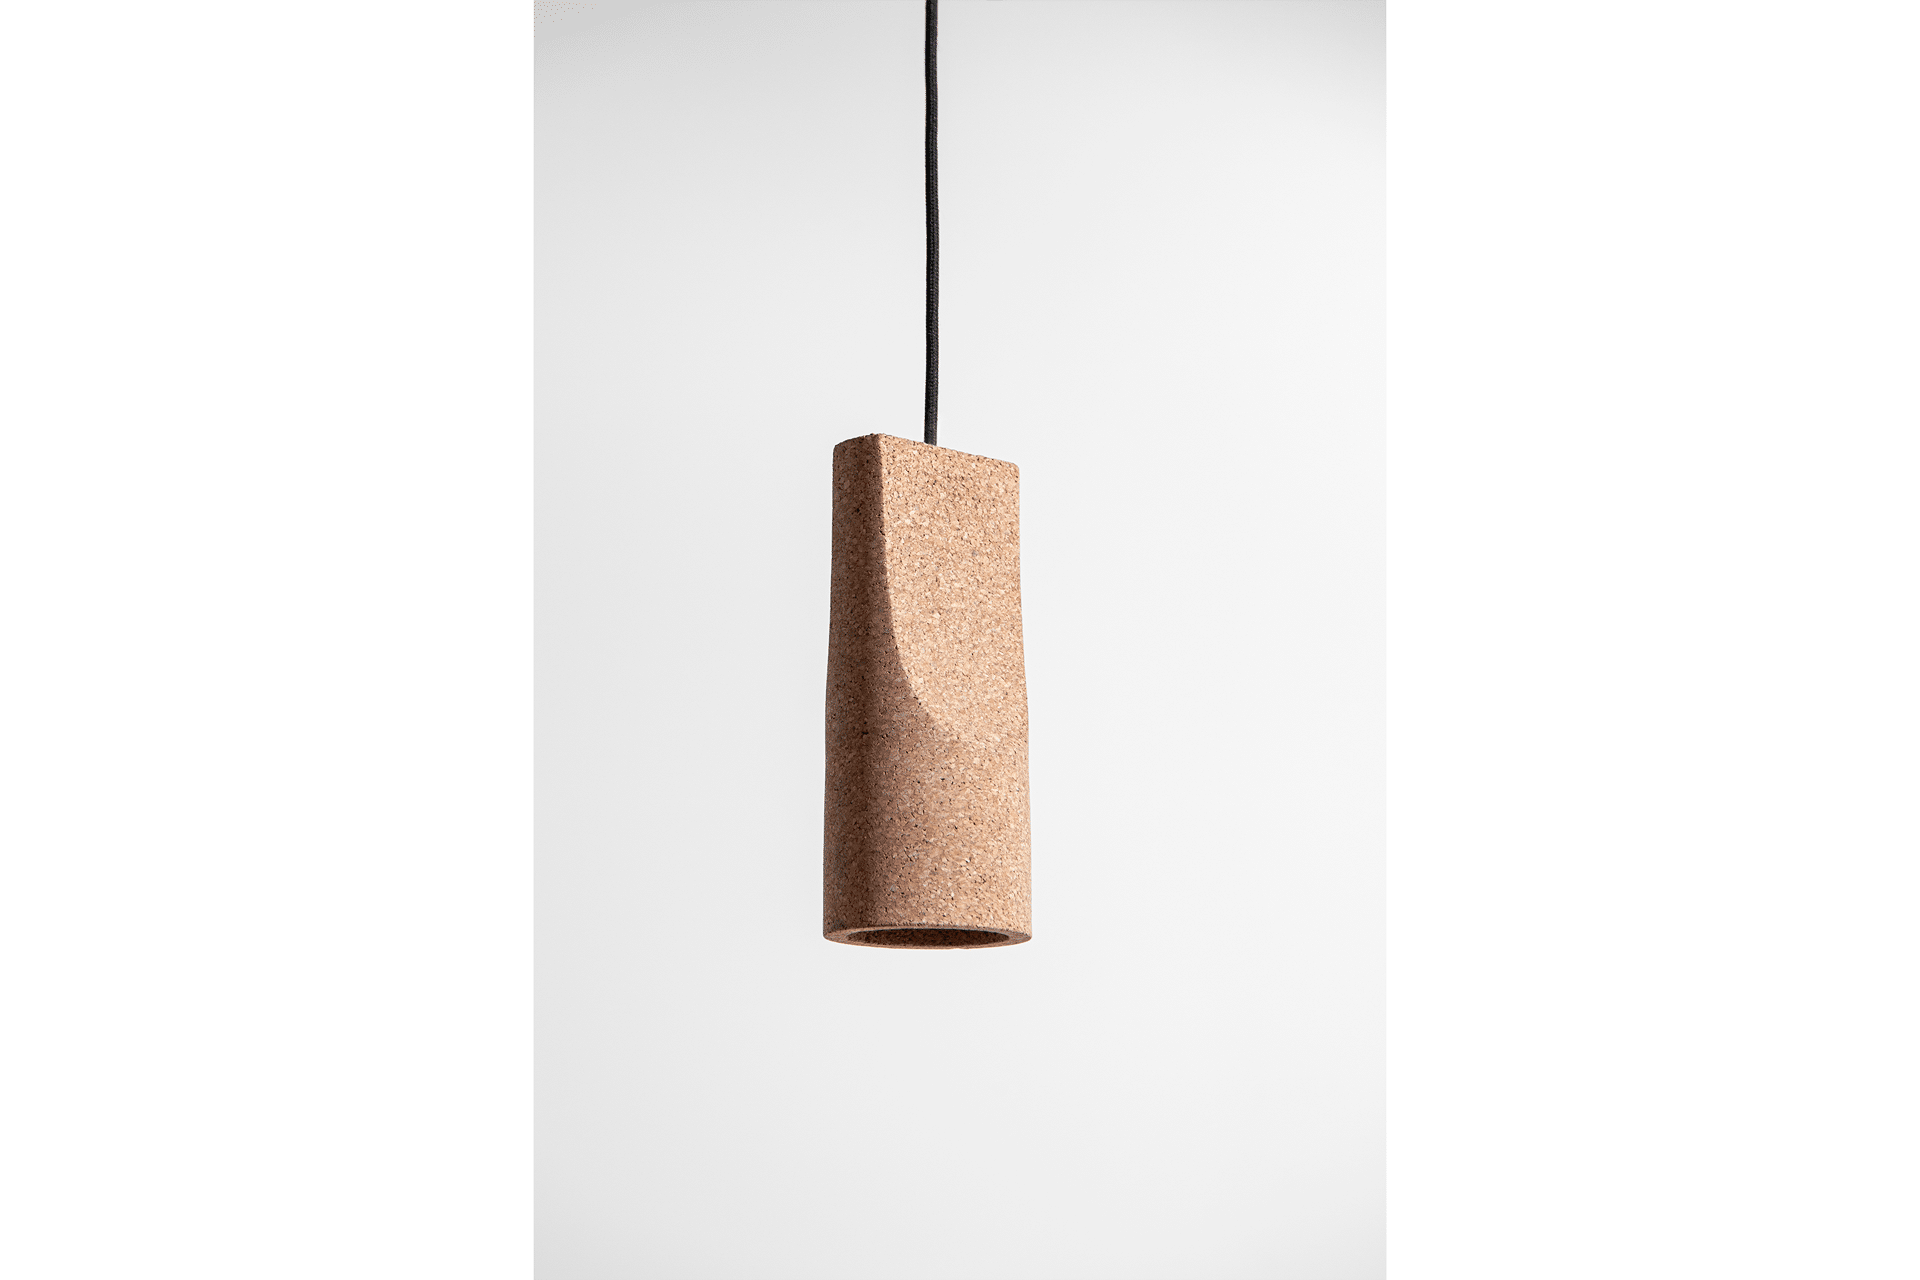 Cork Hanging Lamp for Hall- DESIGN BY MIGUEL SOEIRO